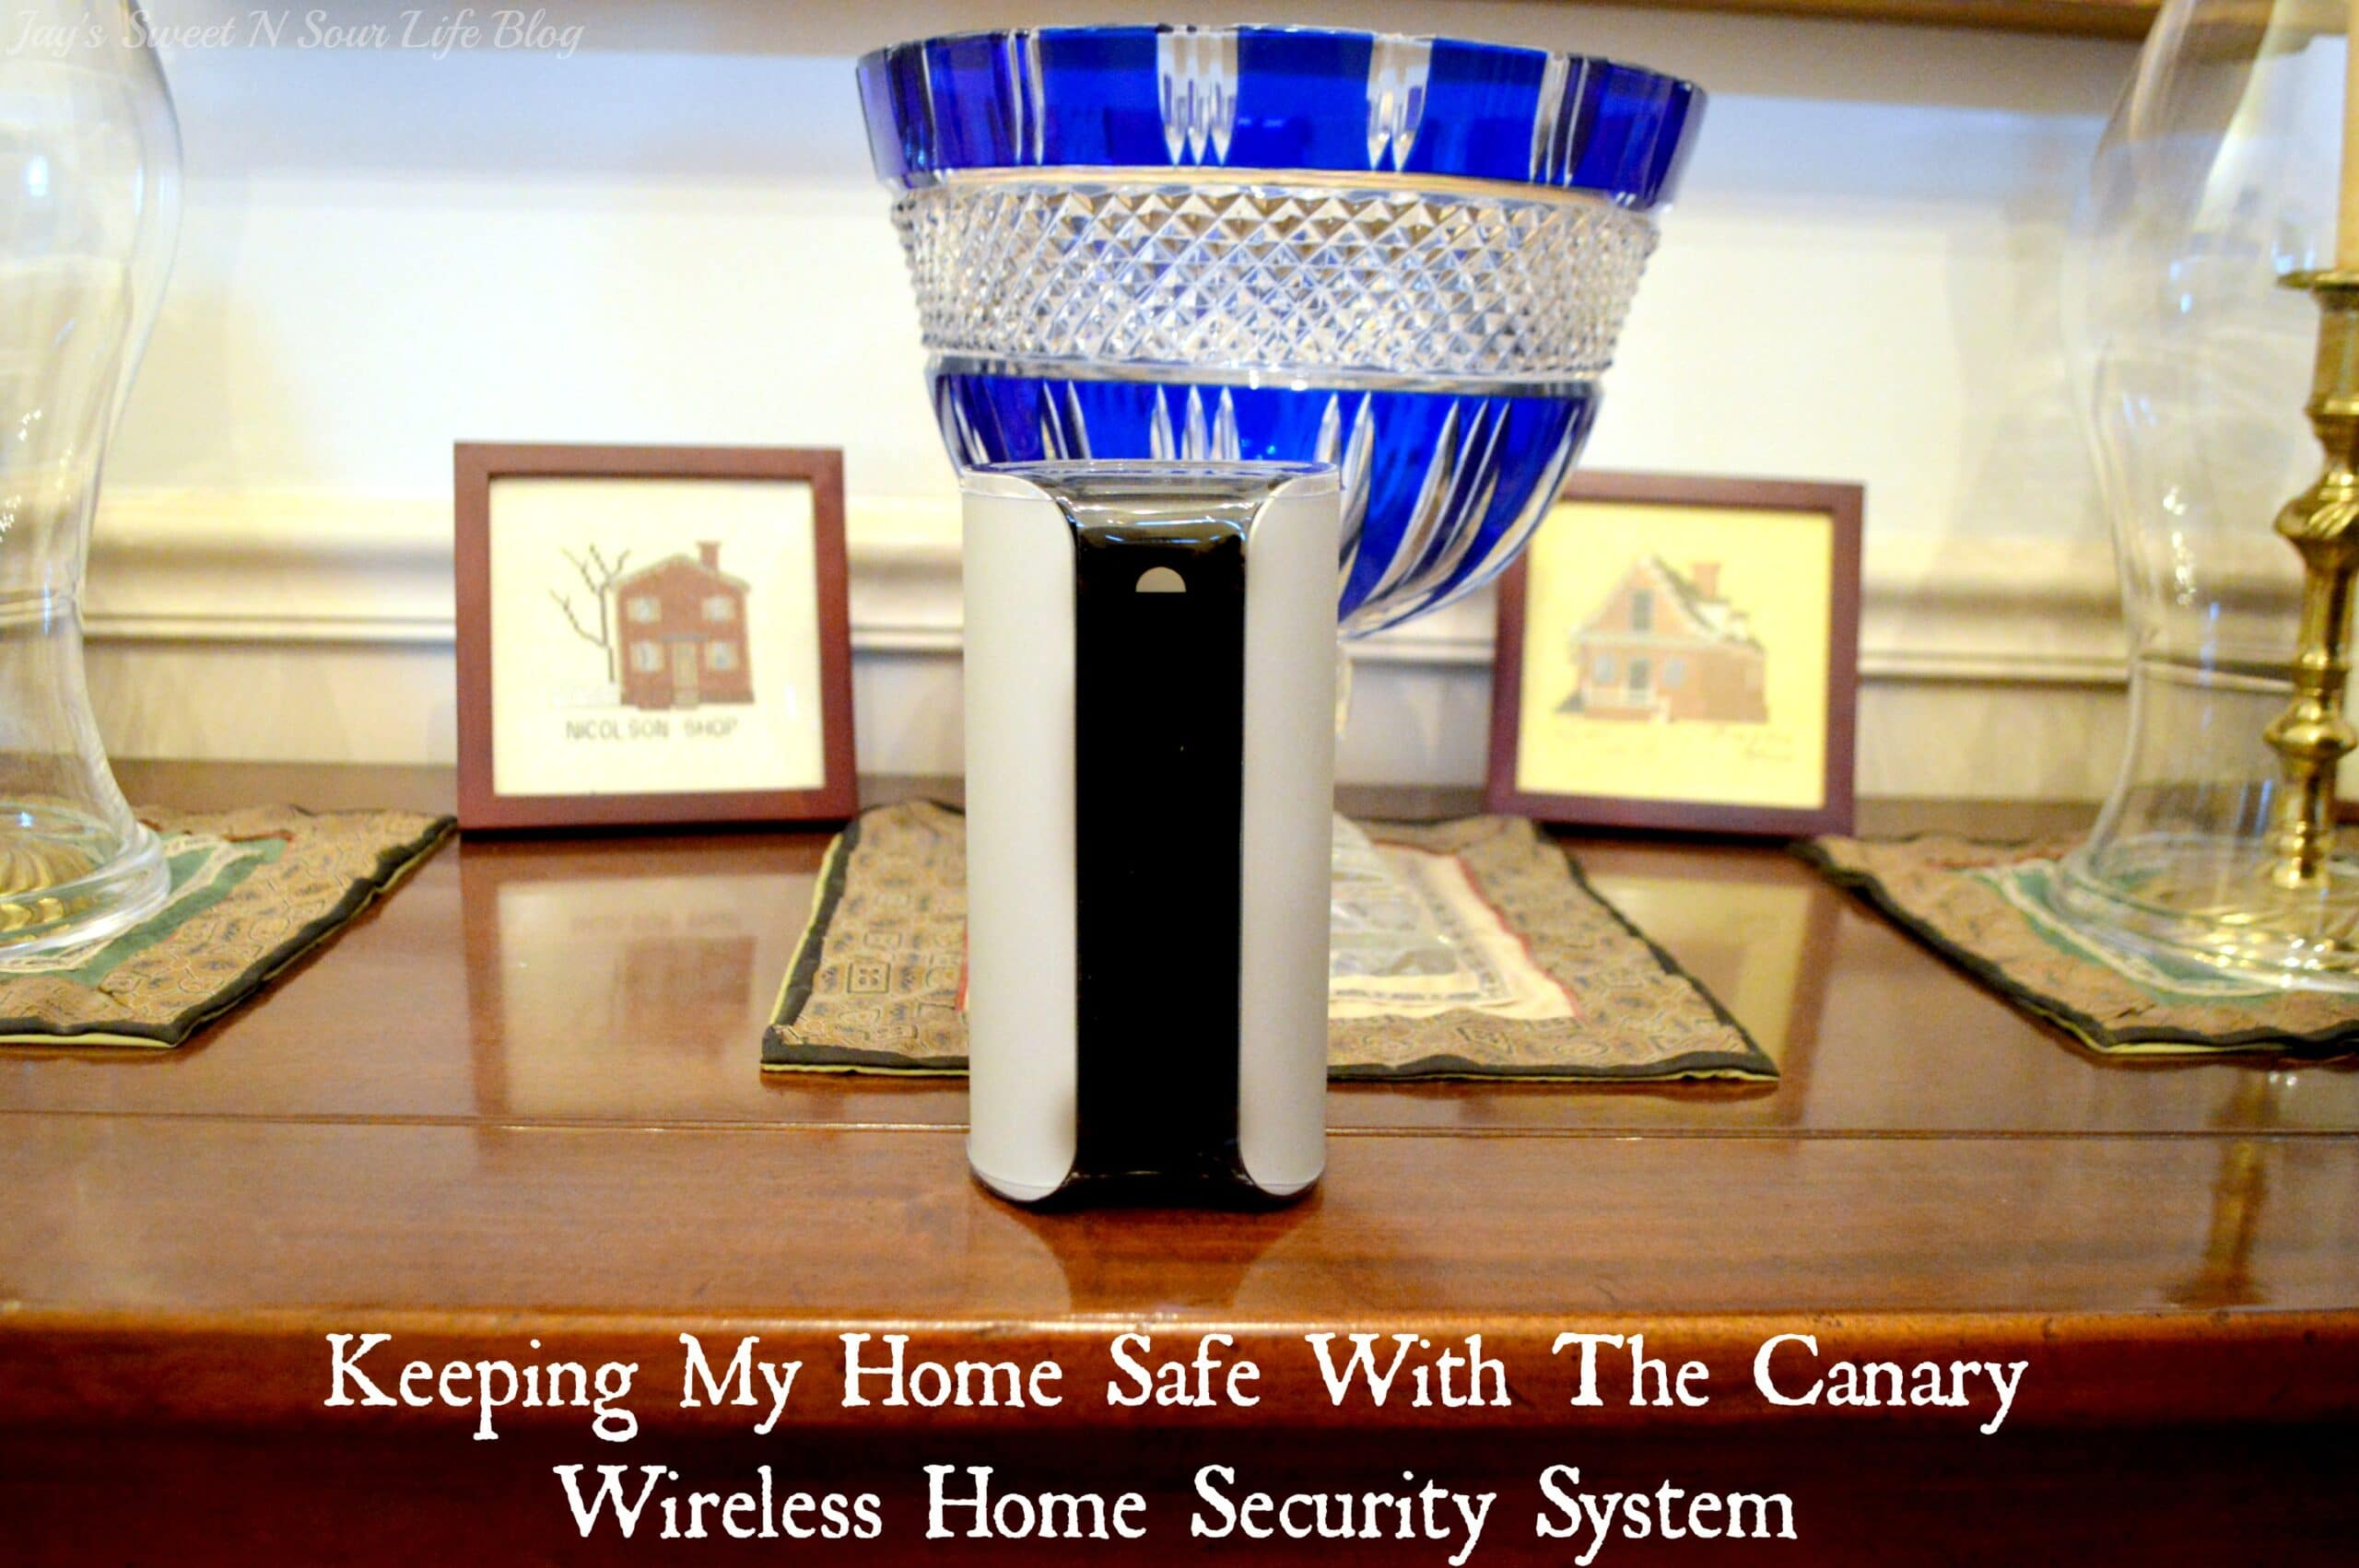 Keeping My Home Safe With The Canary Wireless Home Security System